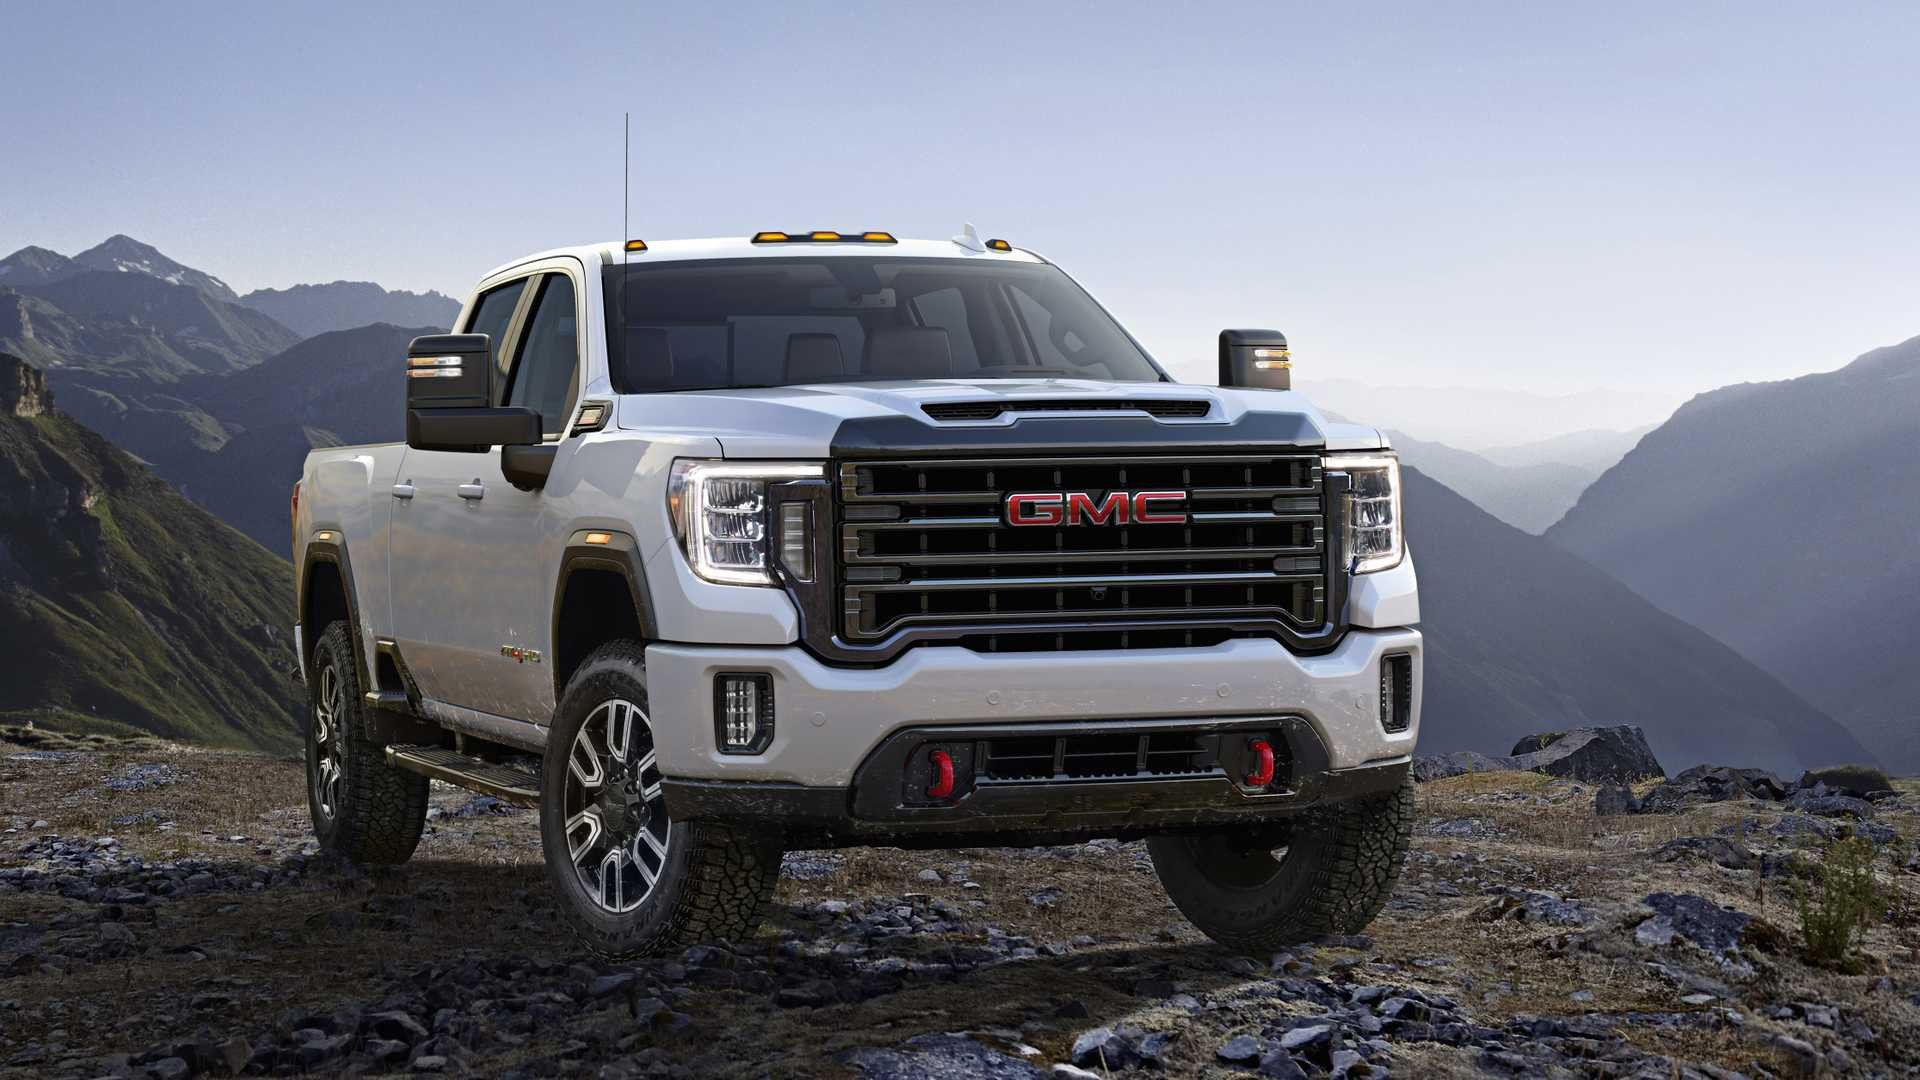 When Does The 2020 Gmc Yukon Come Out Price For When Does The 2020 Gmc Yukon Come Out Redesign Price And Review Di 2020